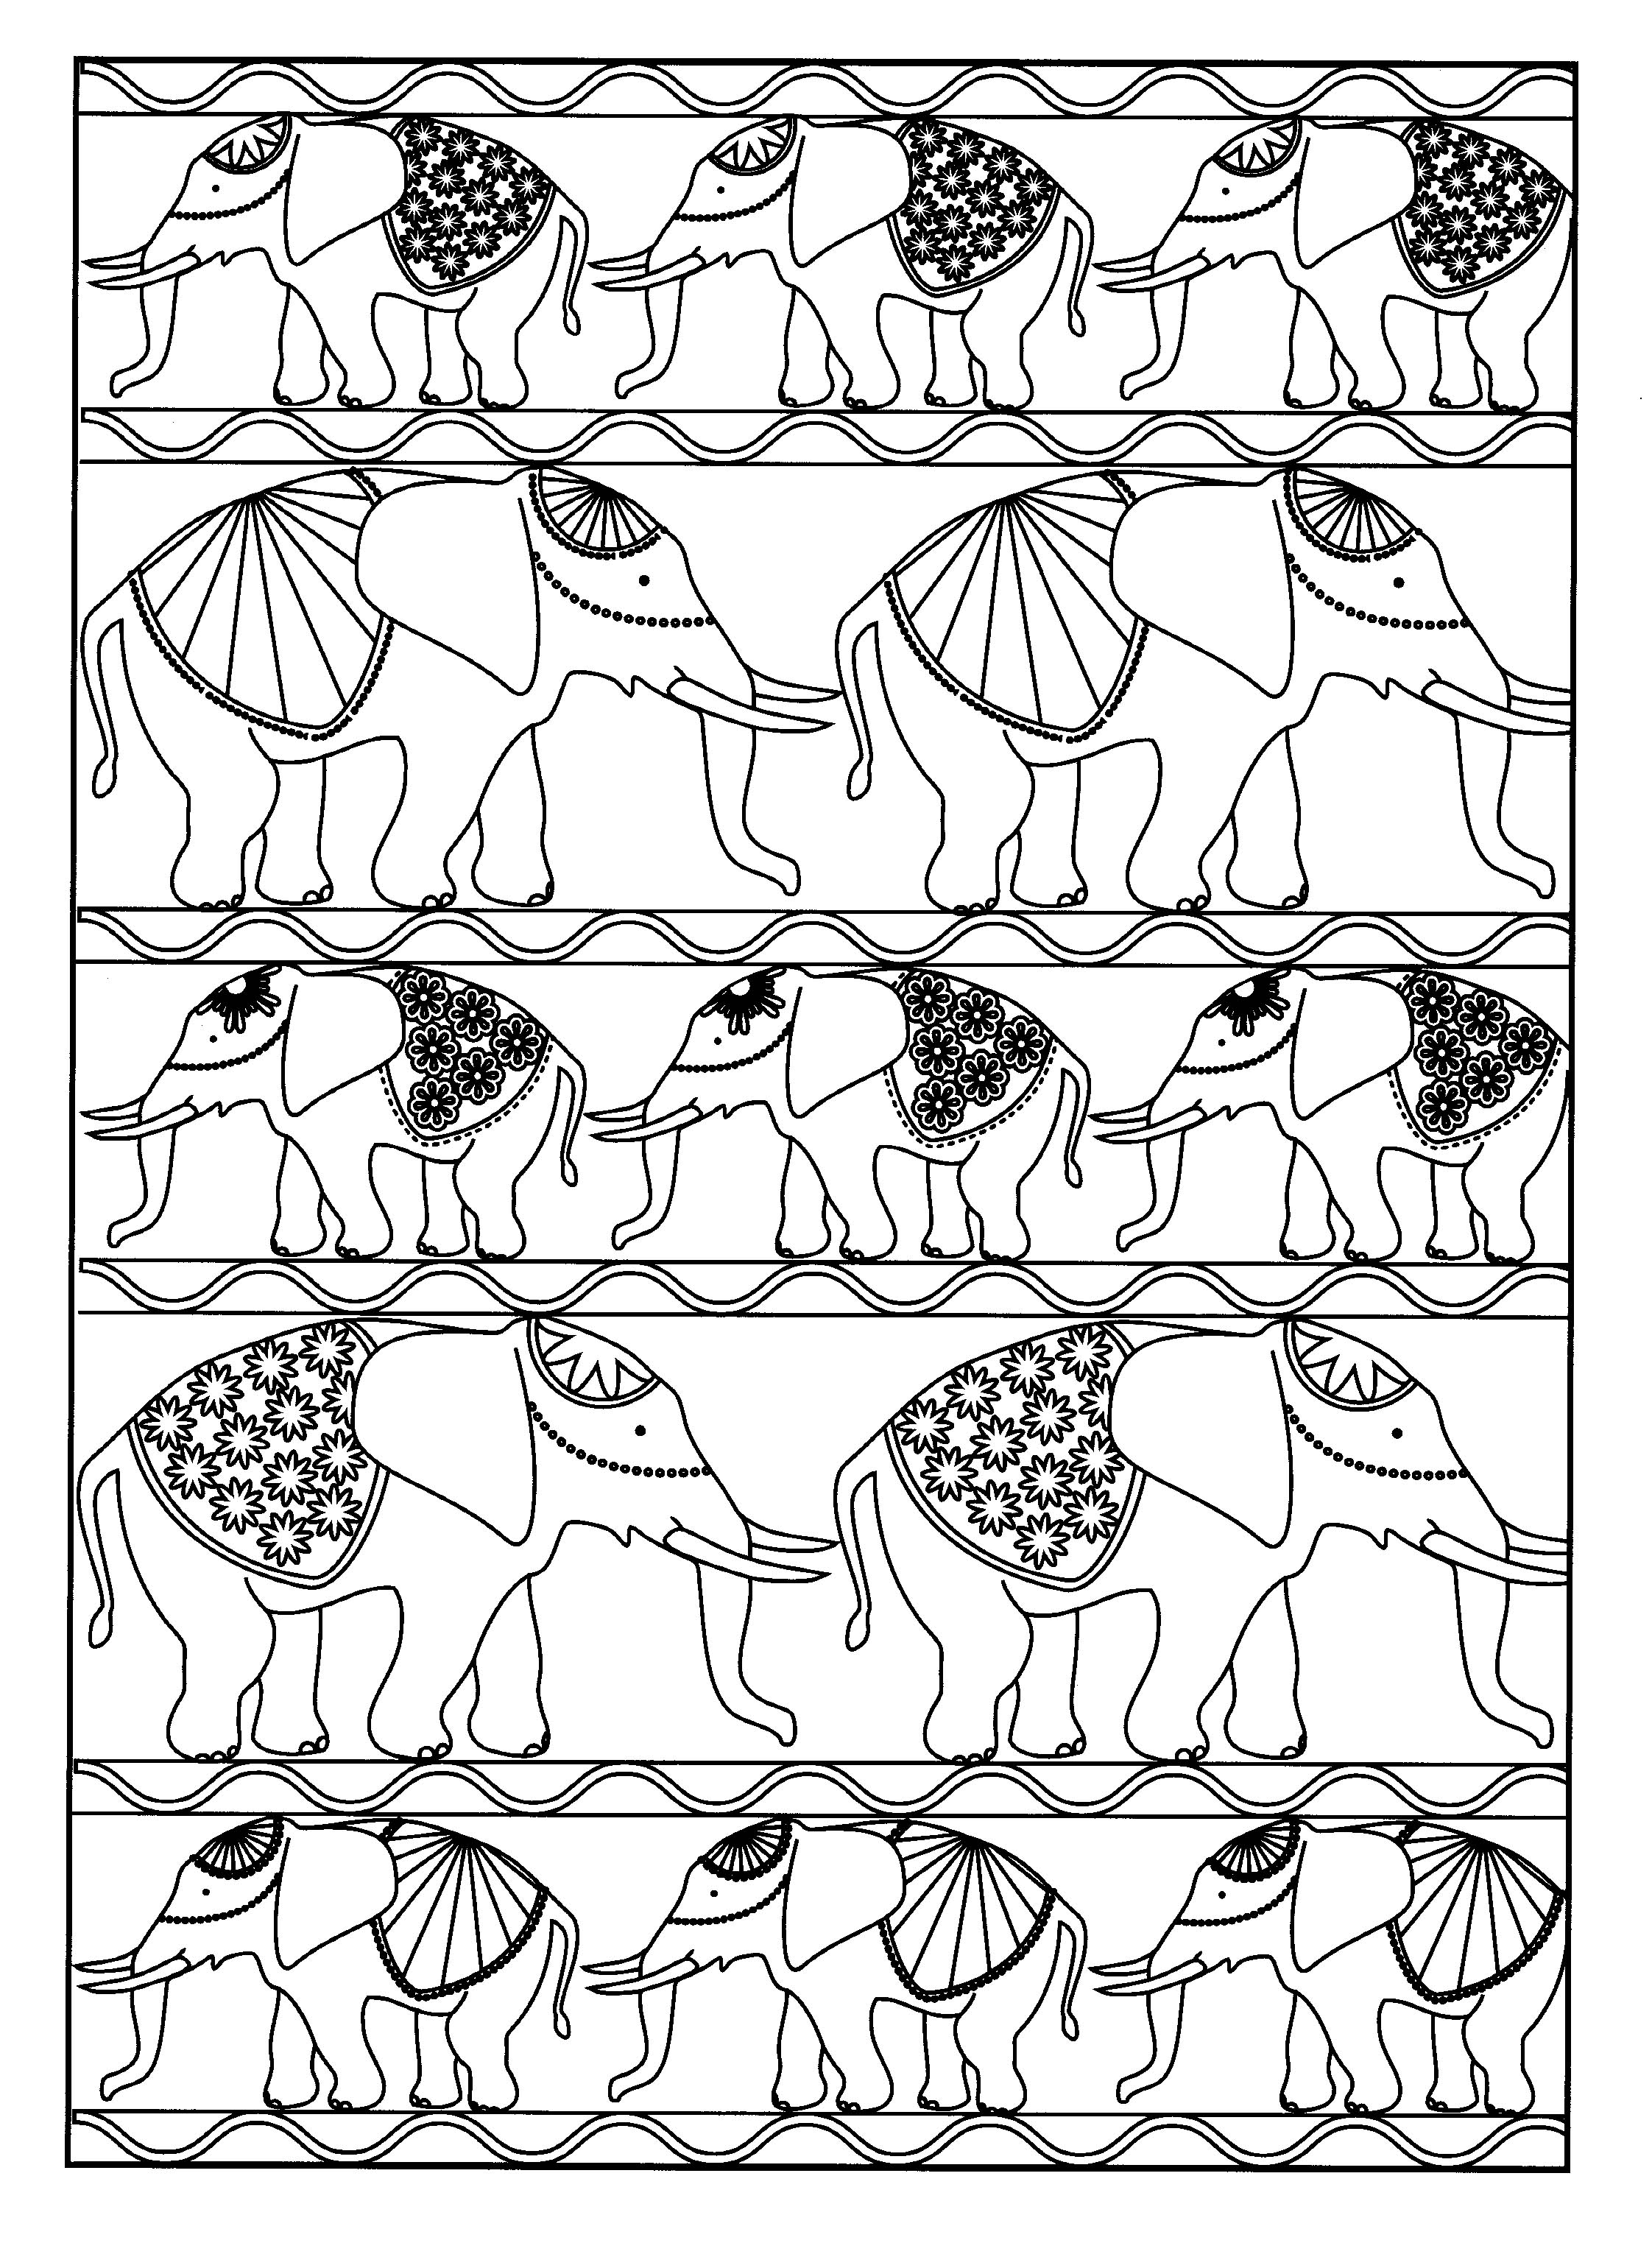 Simple Elephants Coloring Page